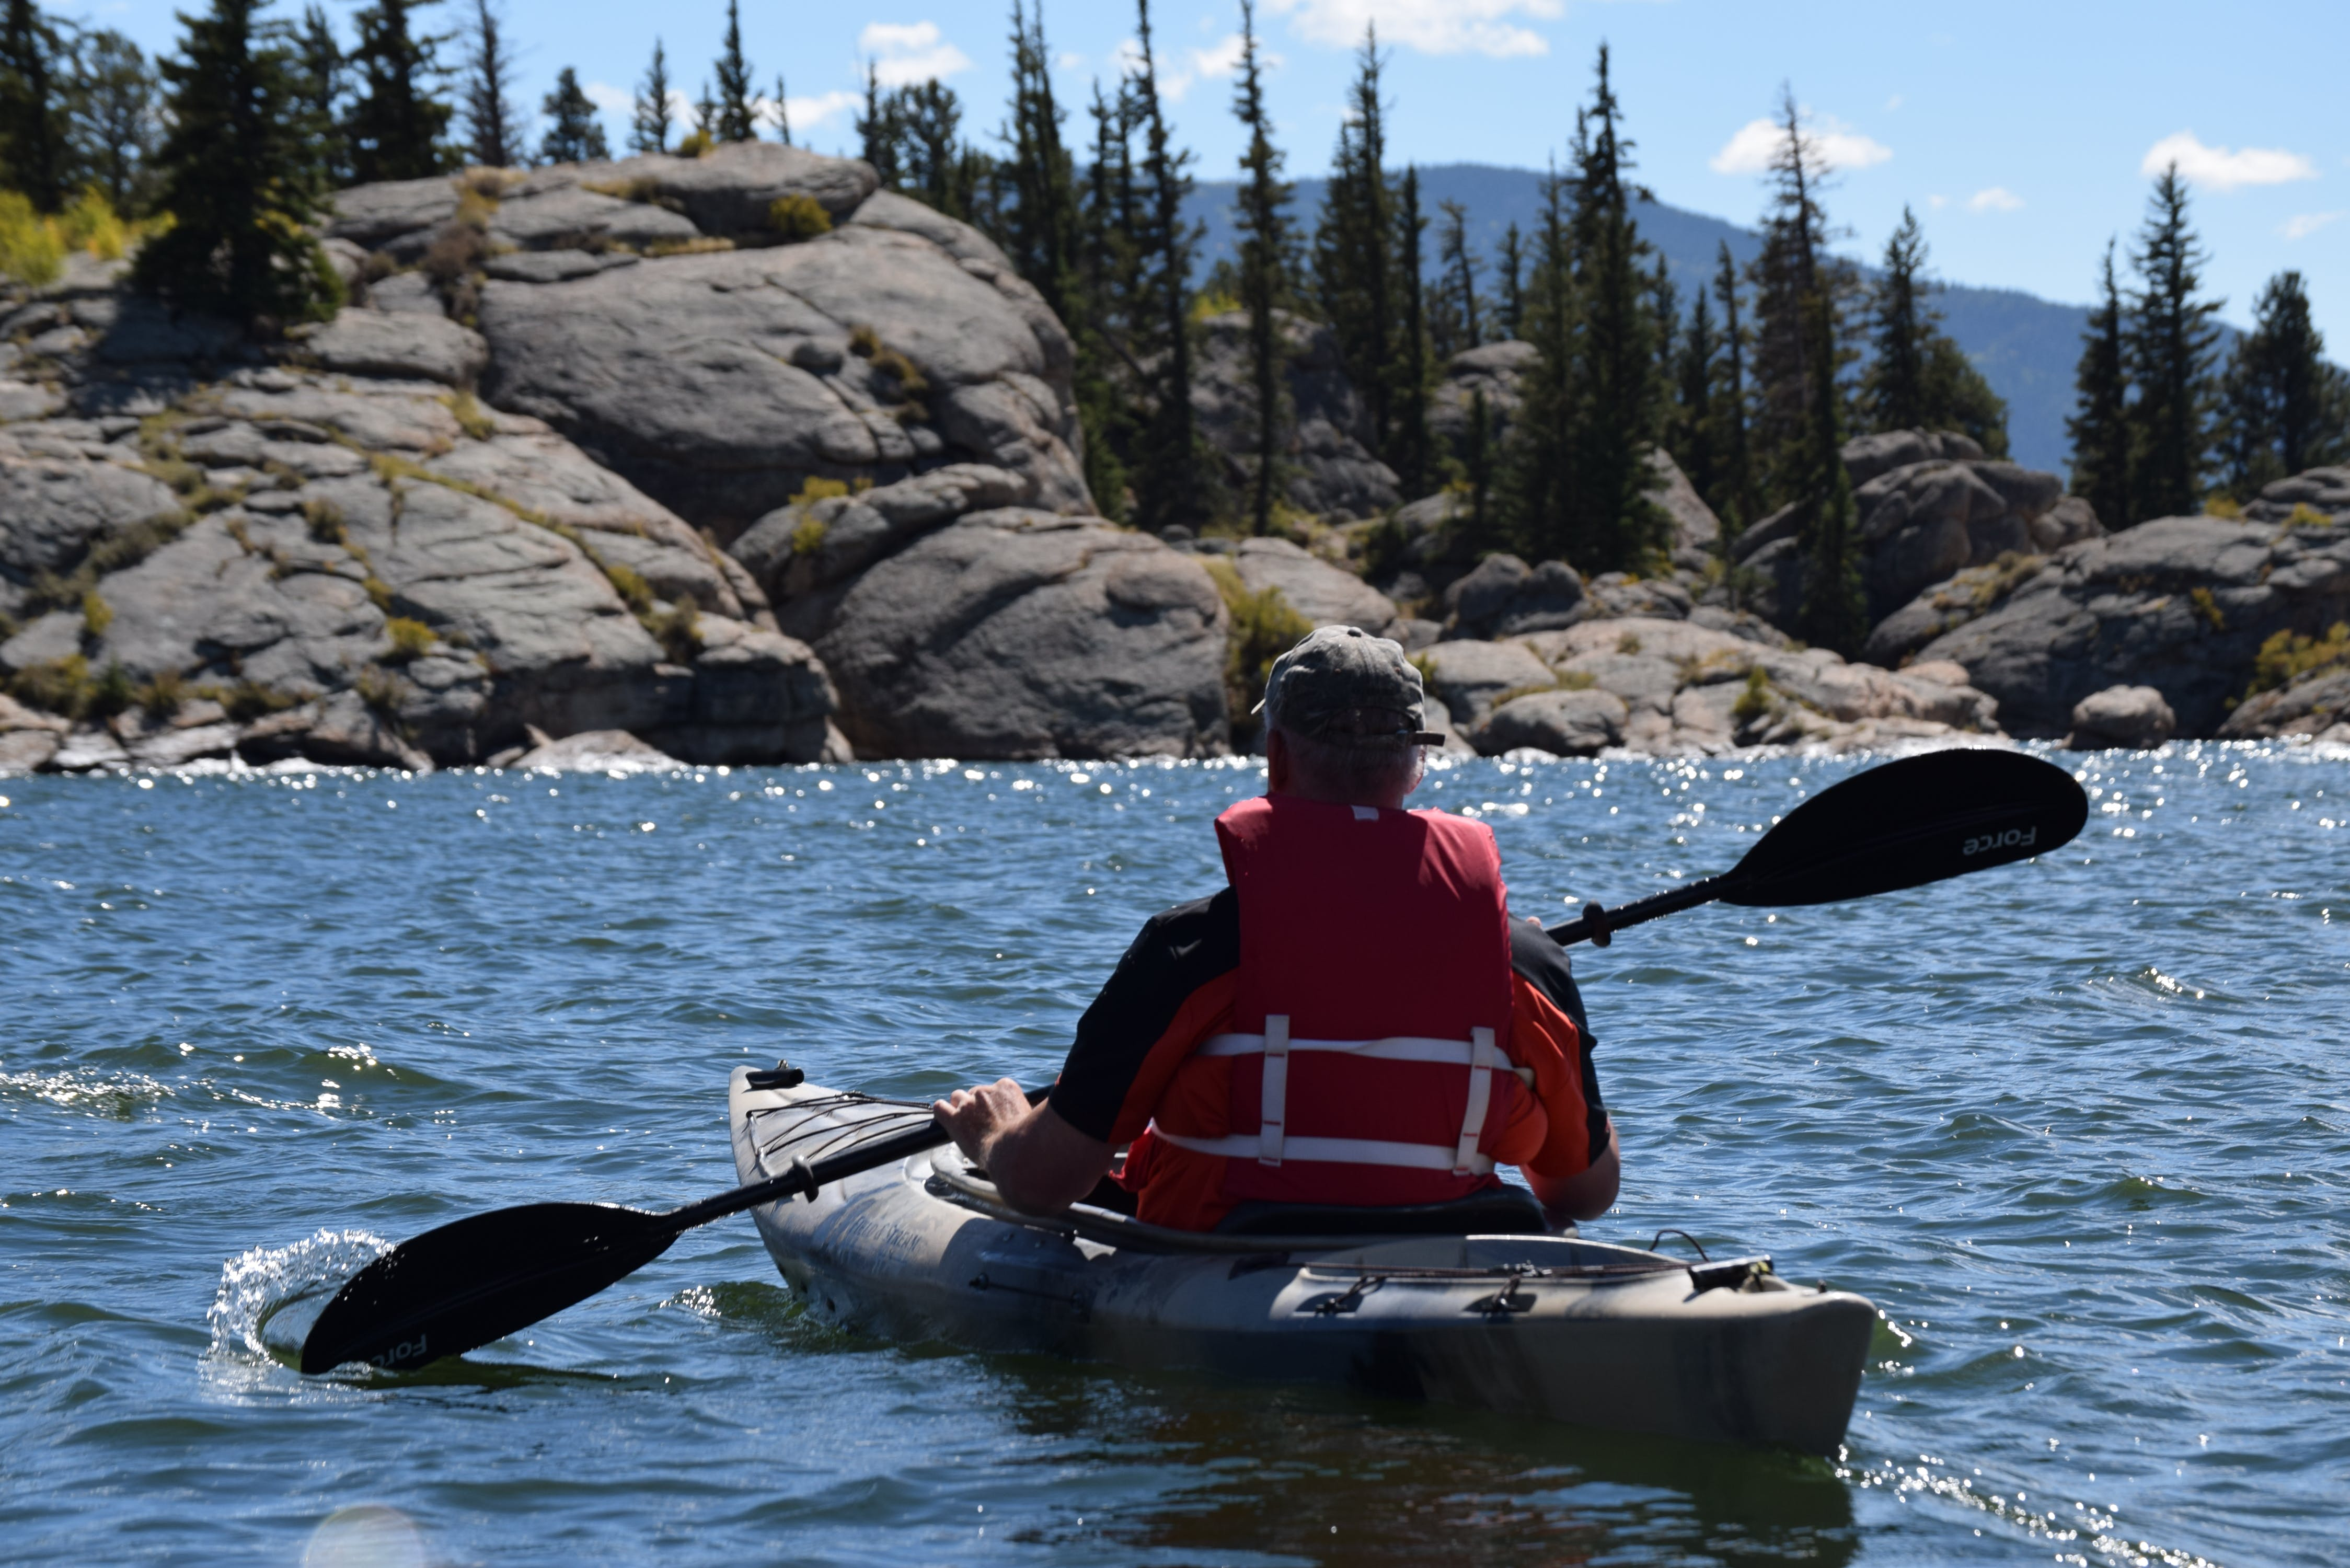 Photo Of Person On Kayak